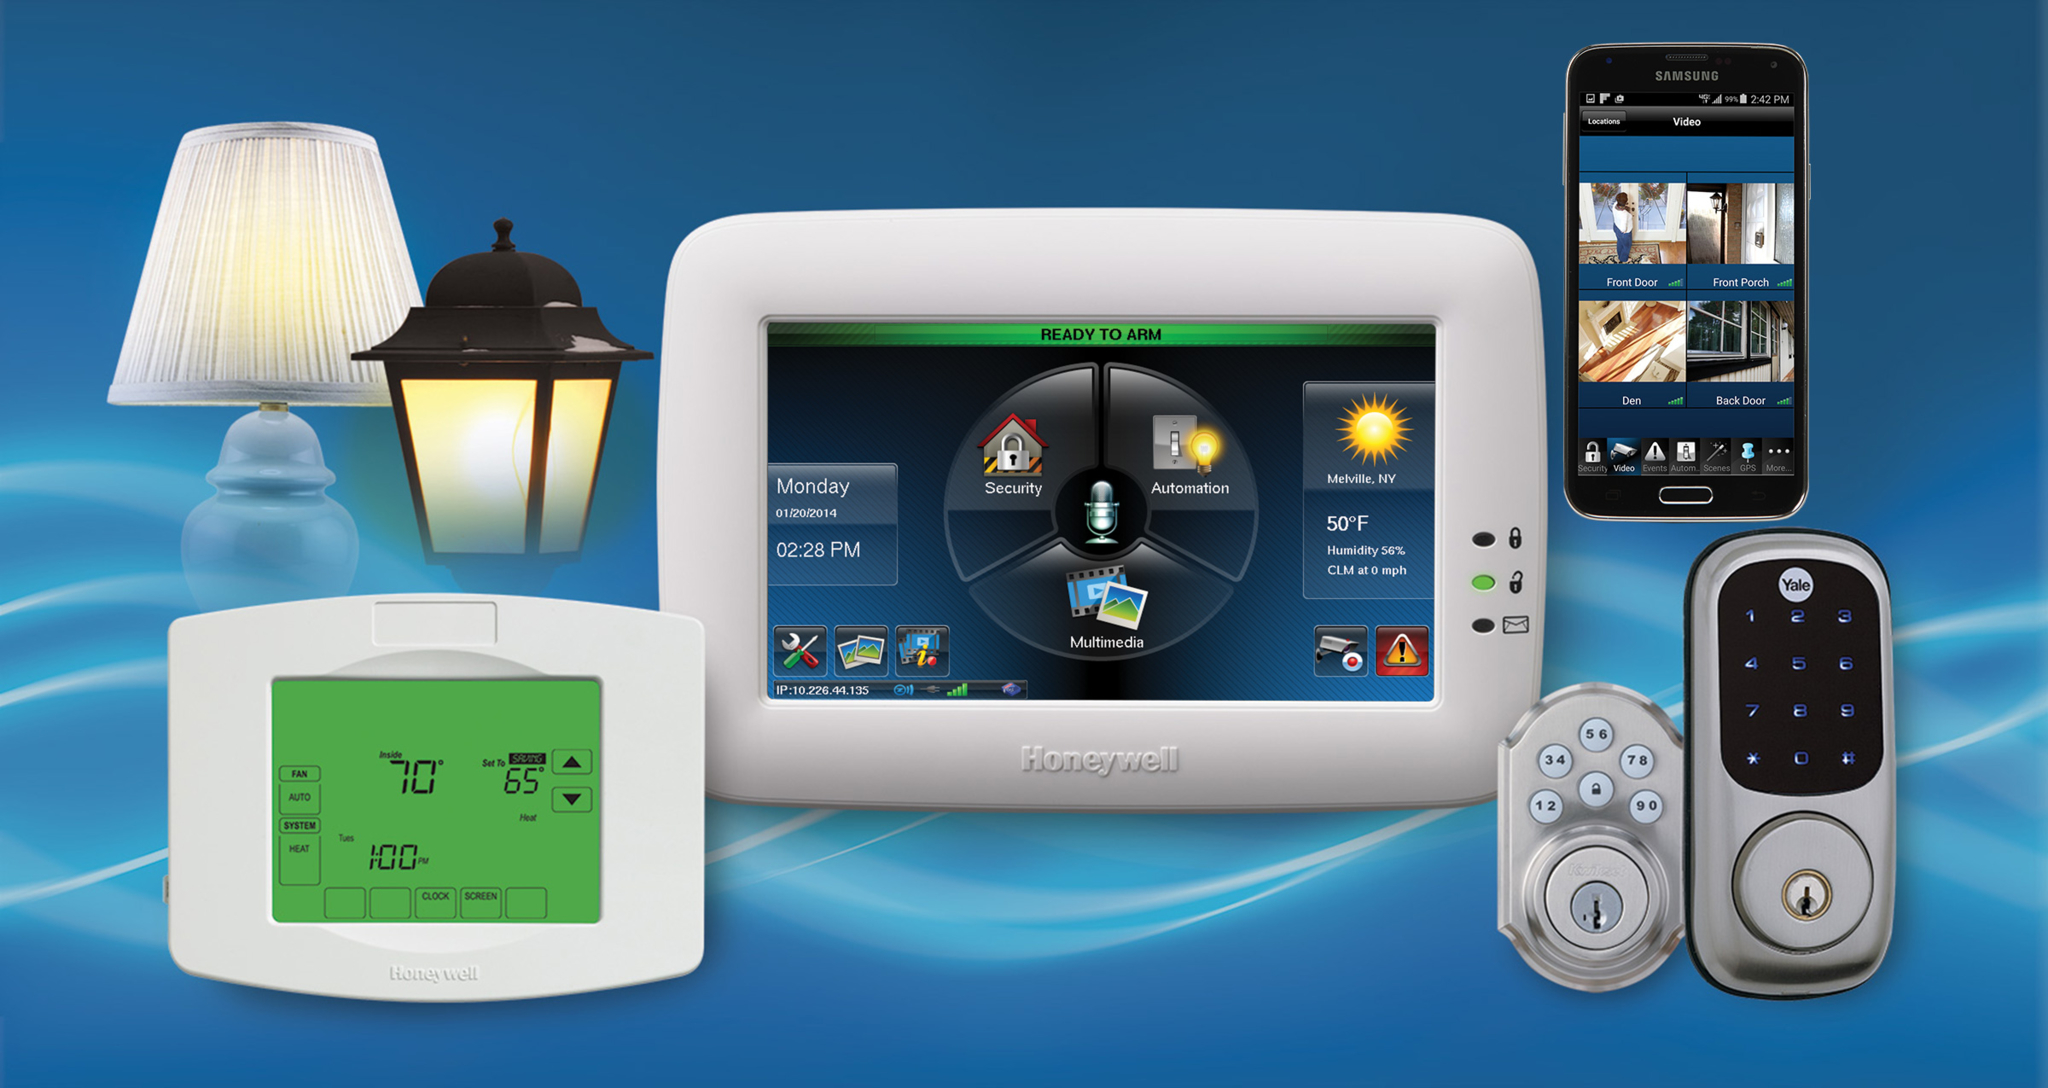 Total Connect allows you to easily connect to your alarm system from any computer or mobile device t Best Security Okanagan Kelowna (250)826-8395